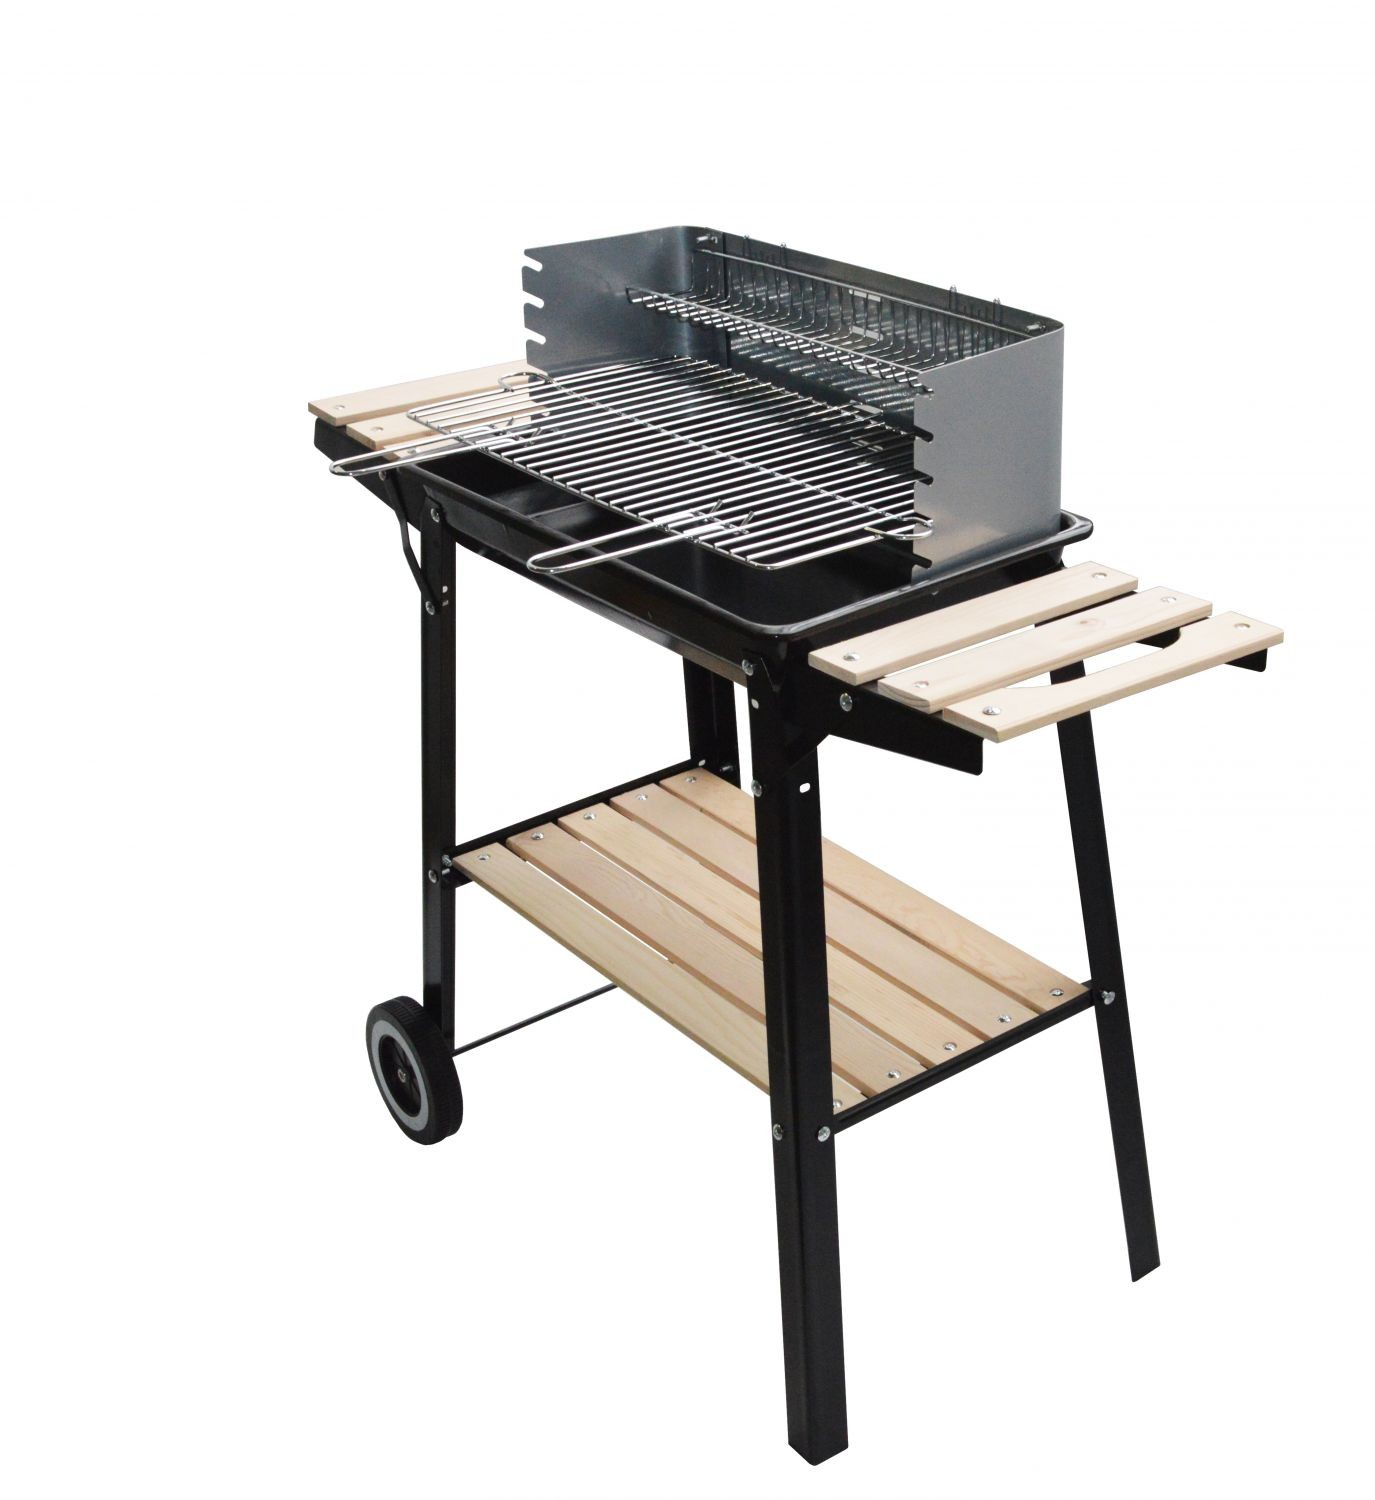 vulcain barbecue charbon 3 tablettes barbecues barbecues et planchas. Black Bedroom Furniture Sets. Home Design Ideas